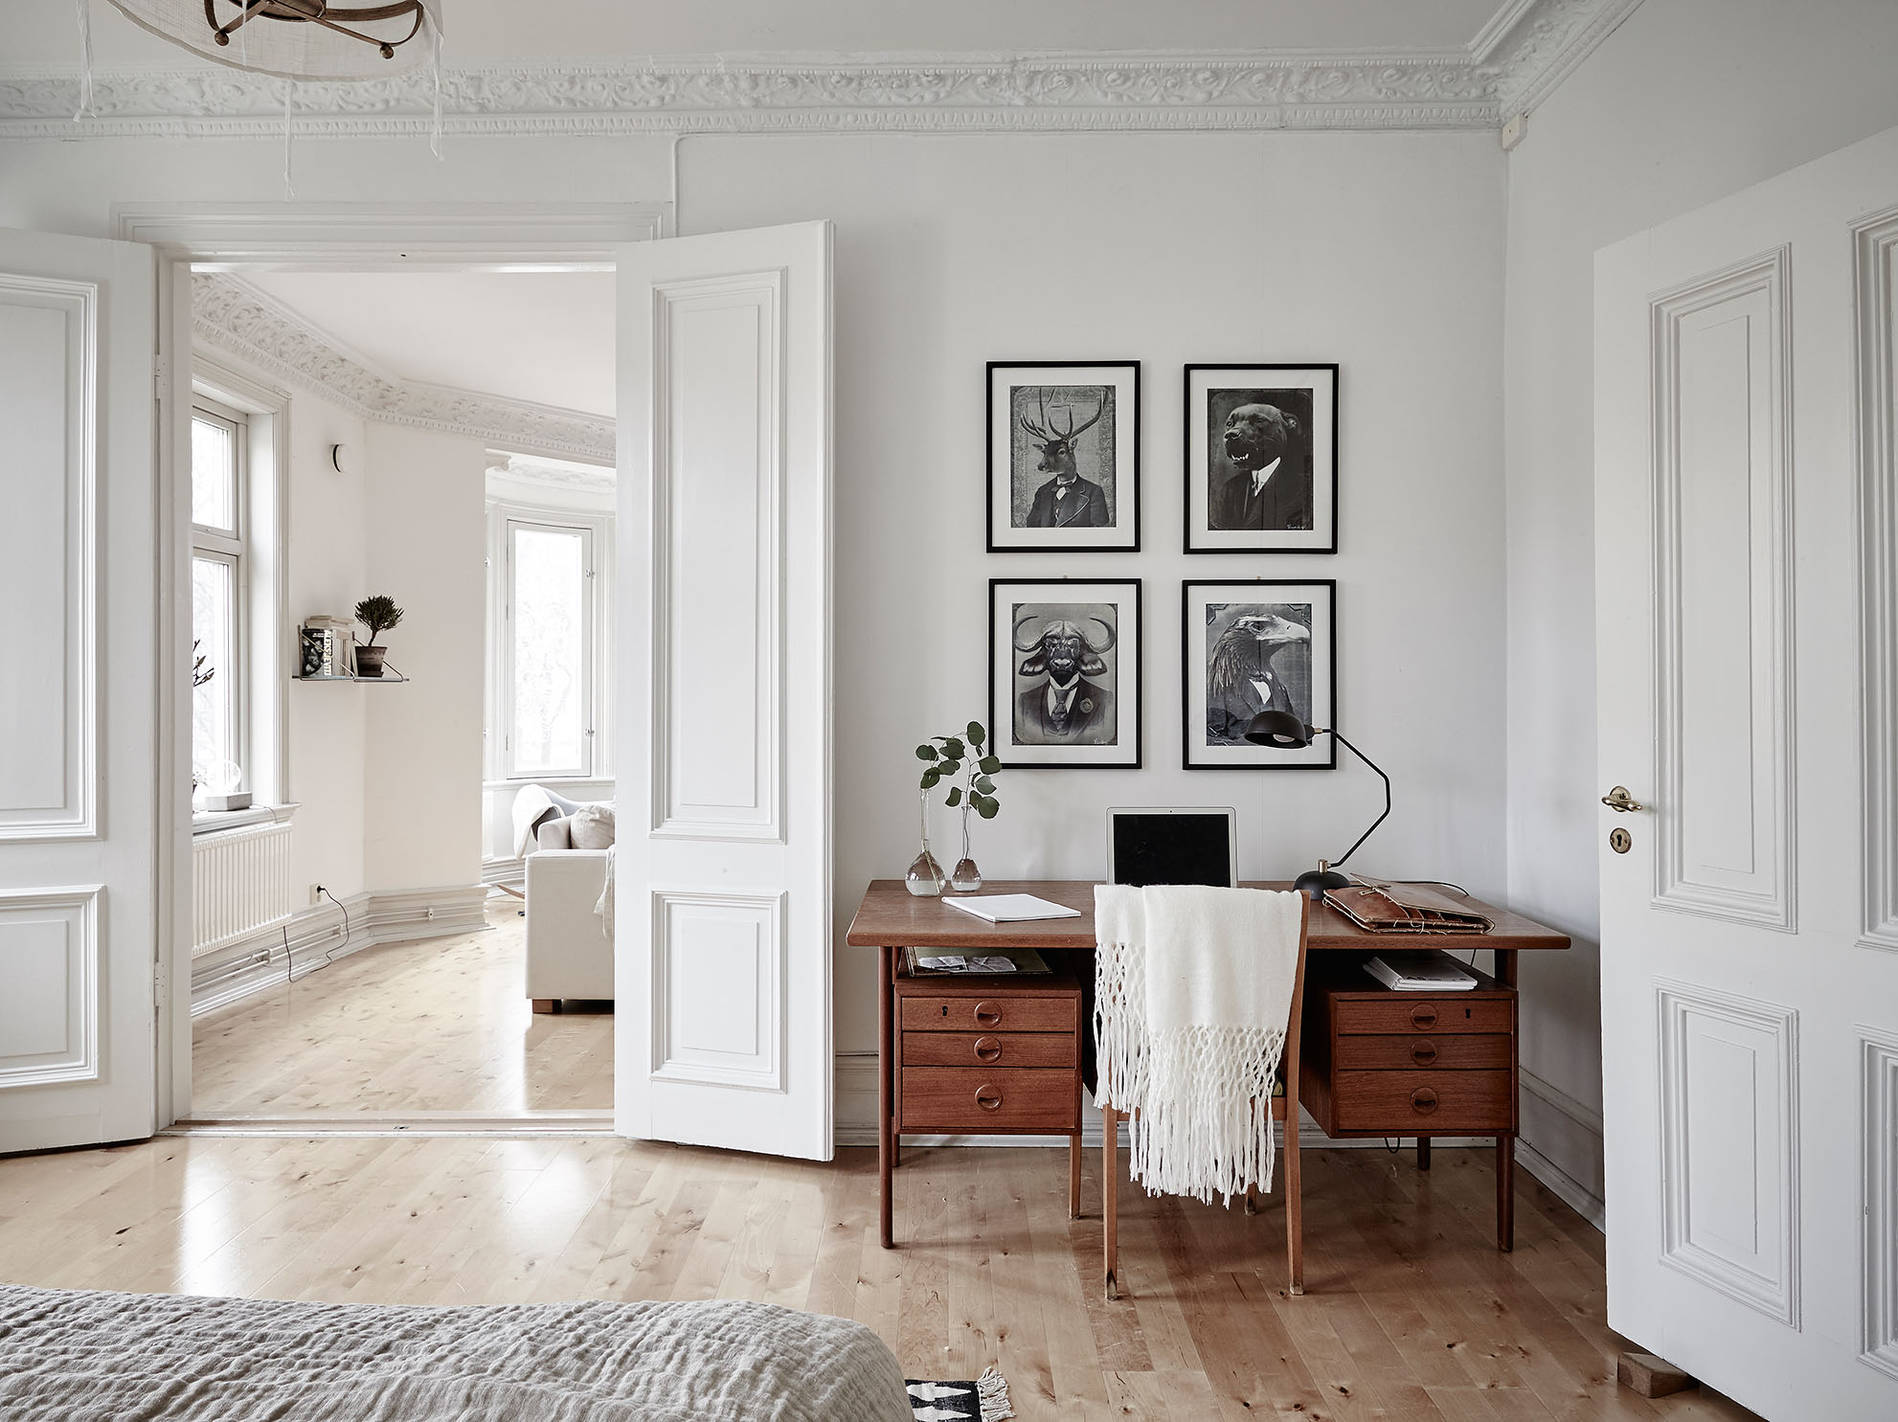 ... Mid Century Modern Interior In An Old Building   Via  Cocolapinedesign.com ...